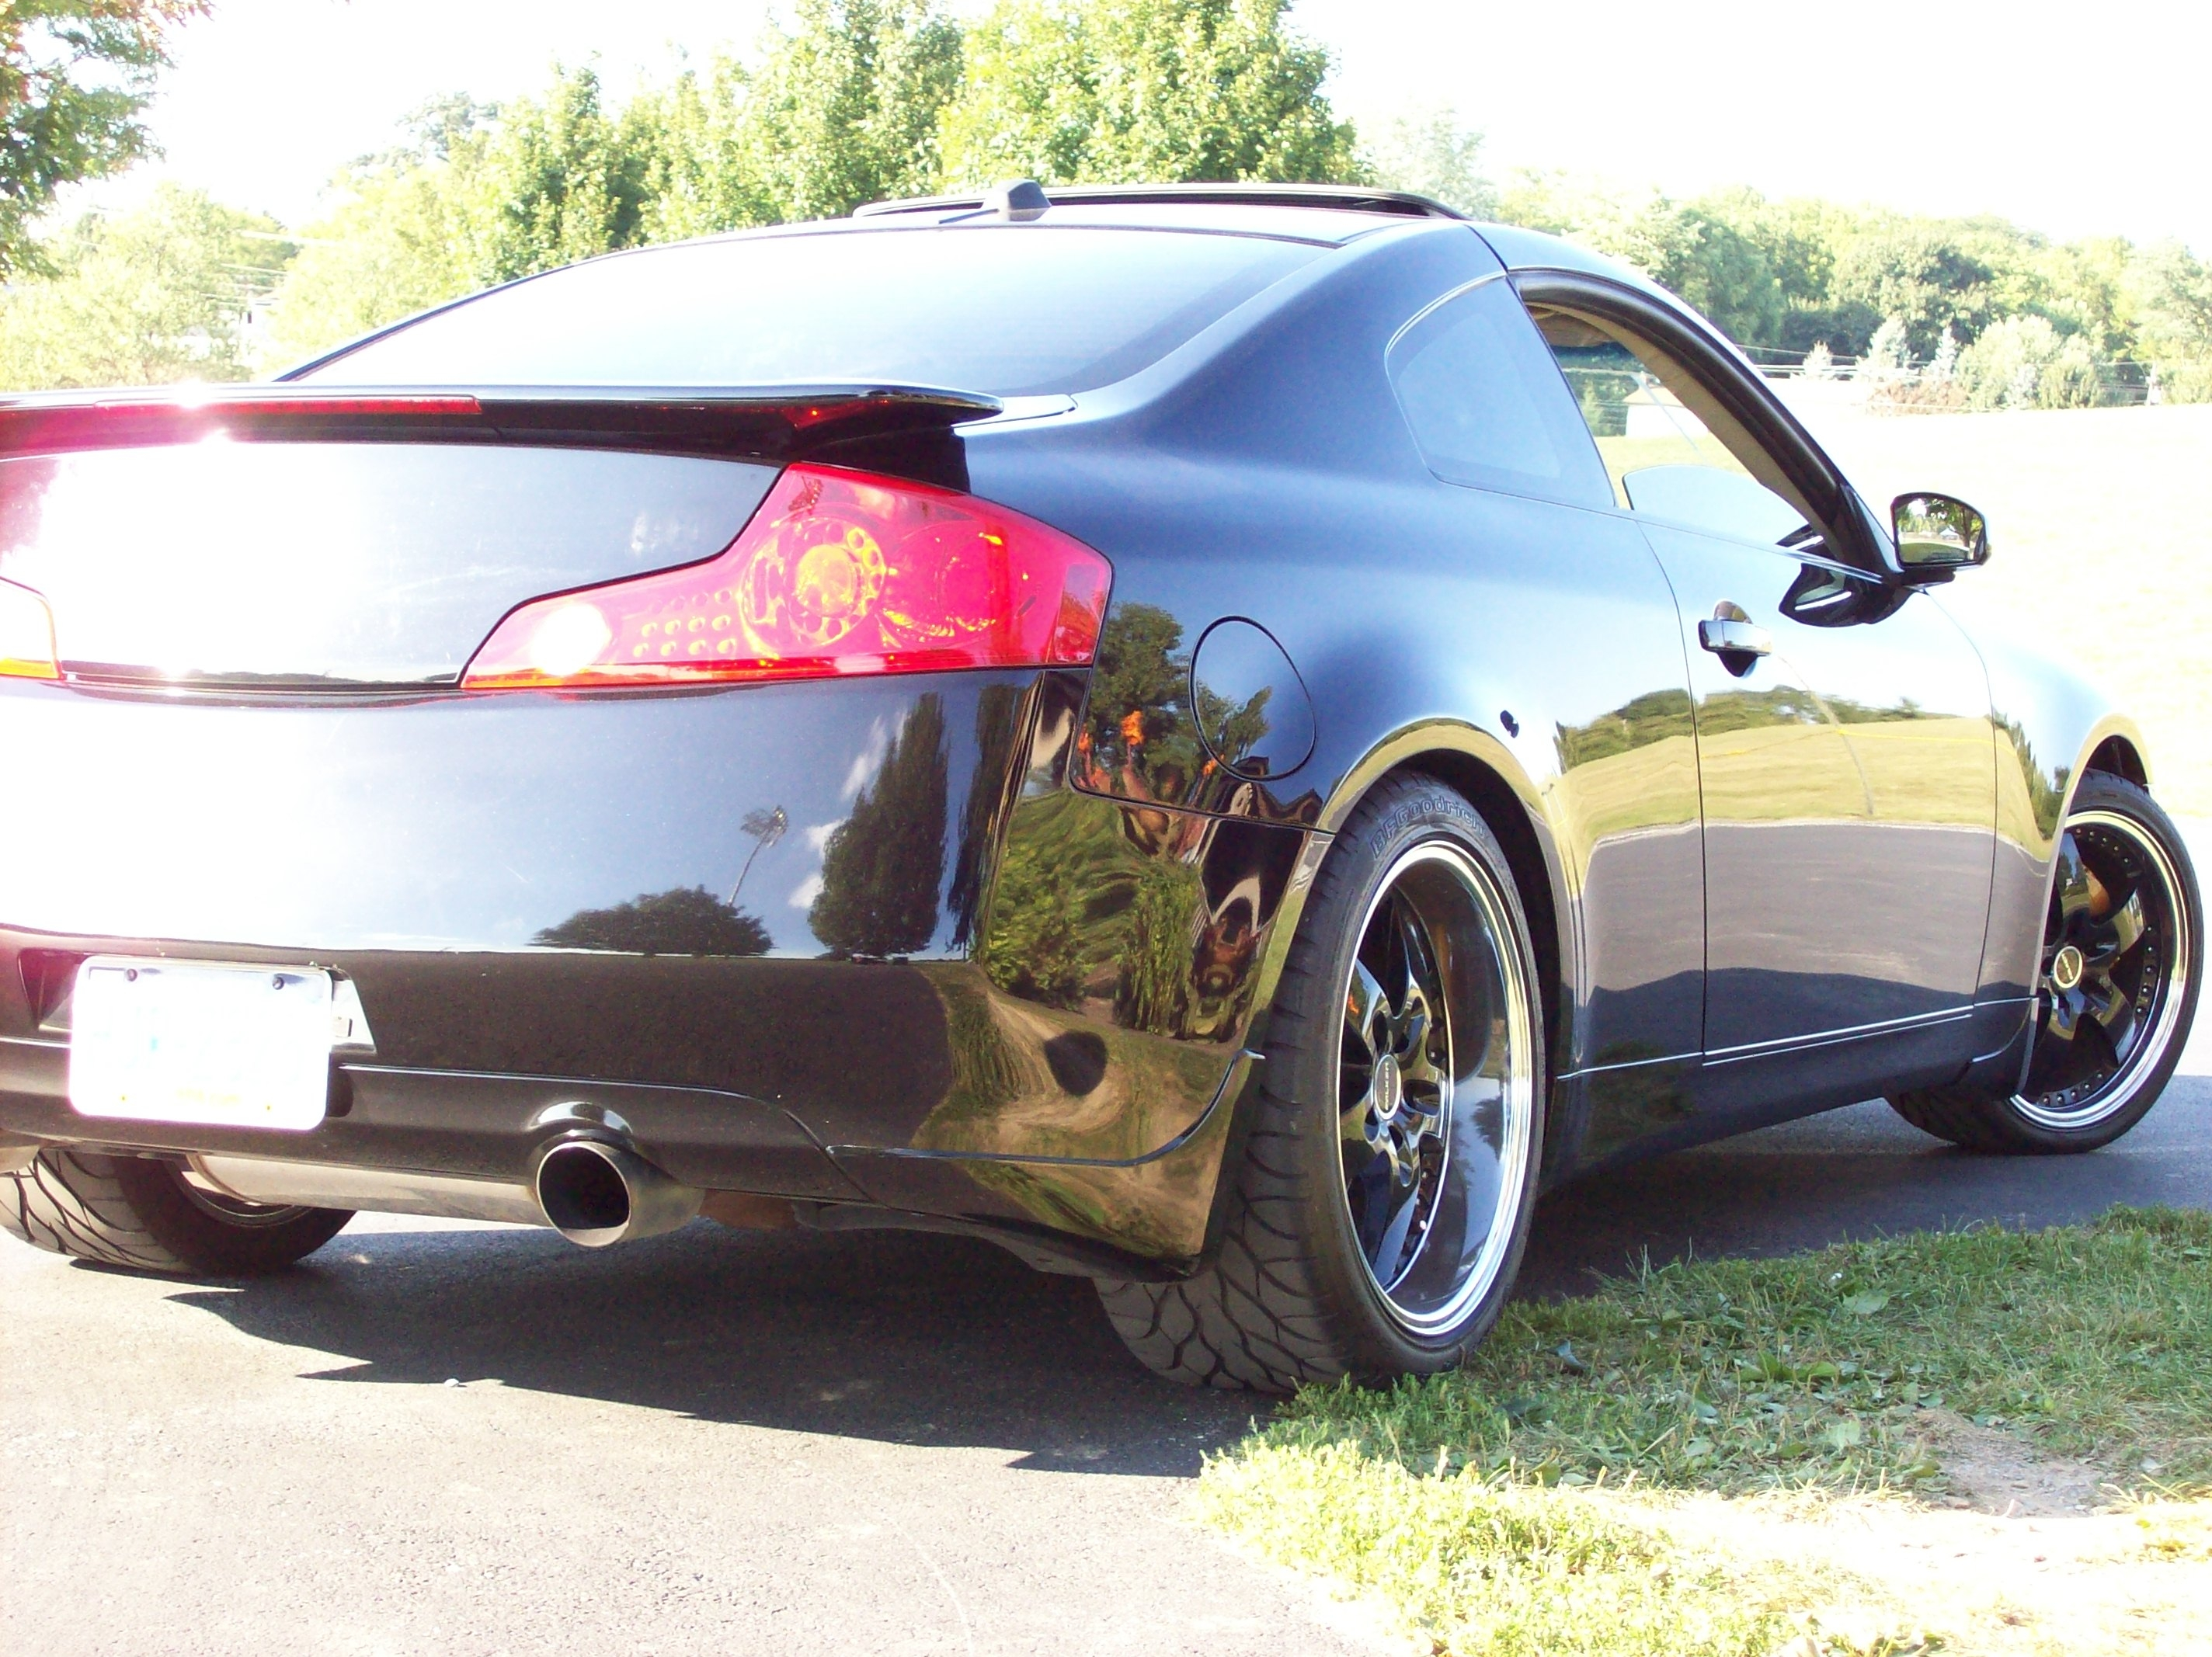 twystd6 39 s 2004 infiniti g g35 coupe 2d in cmch nj. Black Bedroom Furniture Sets. Home Design Ideas